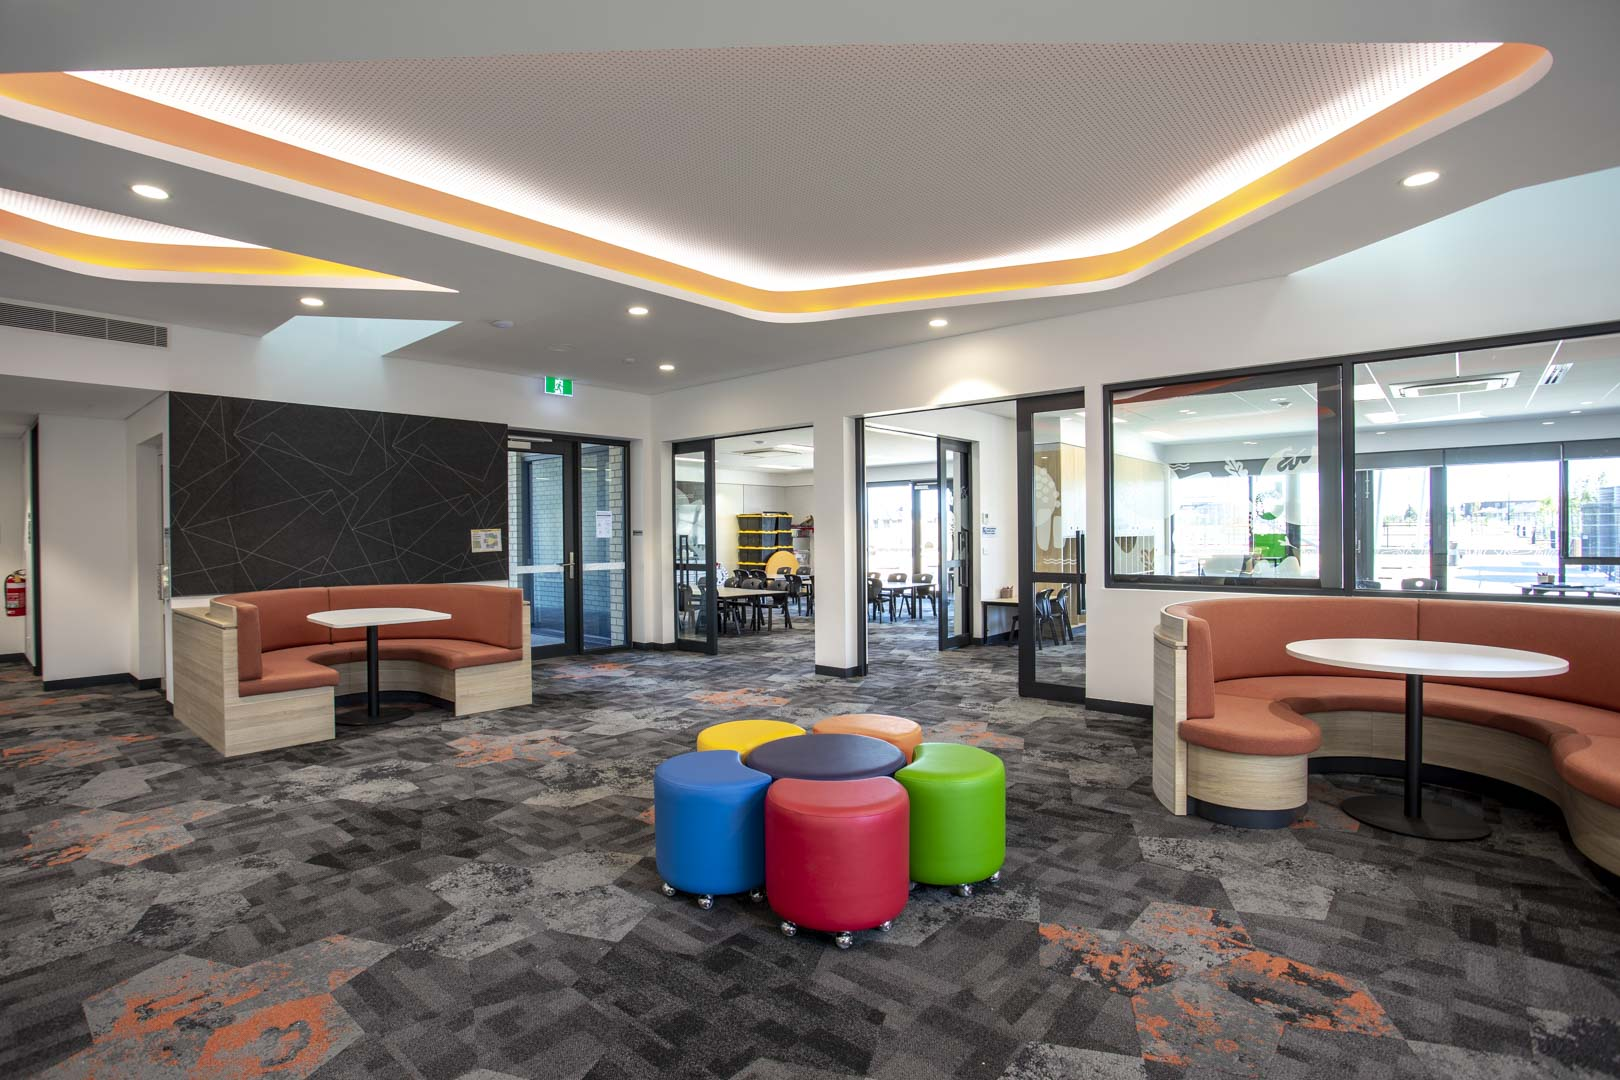 image of a flexible learning space inside a grammar school featuring acoustic sliding doors